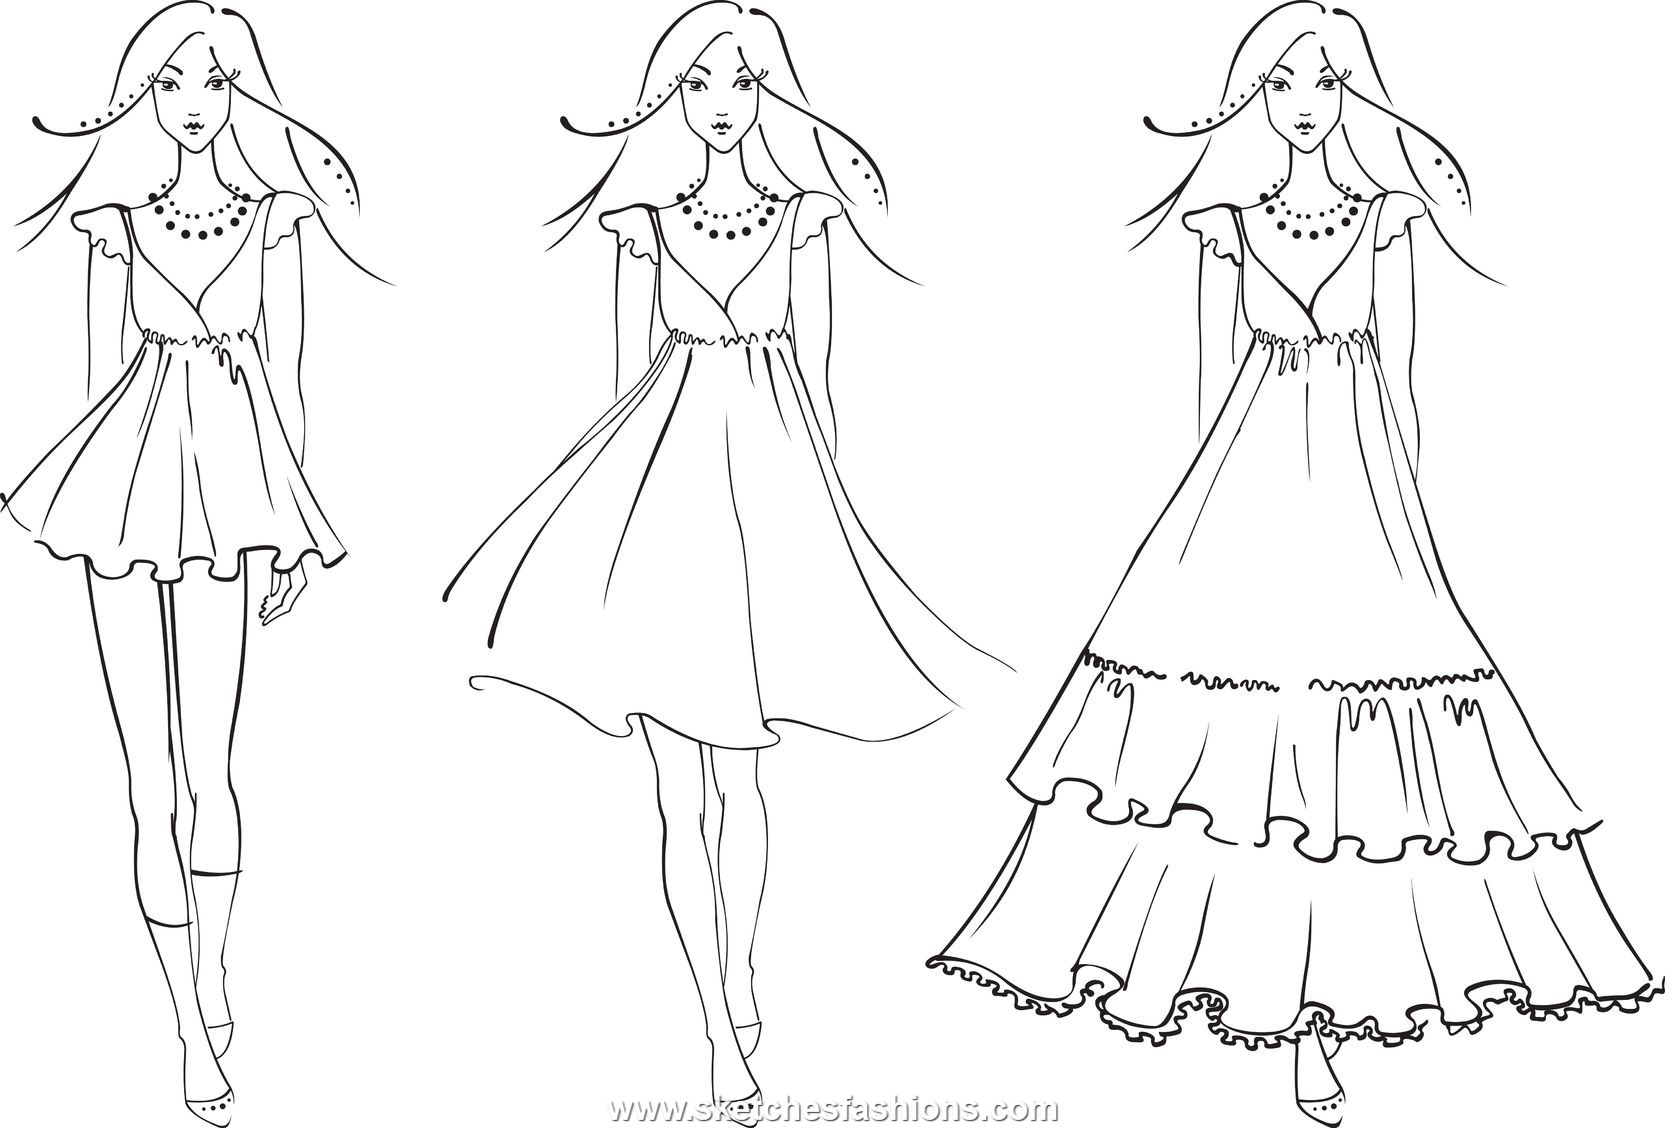 Drawn barbie gown wallpaper Pages Image And Design Dress